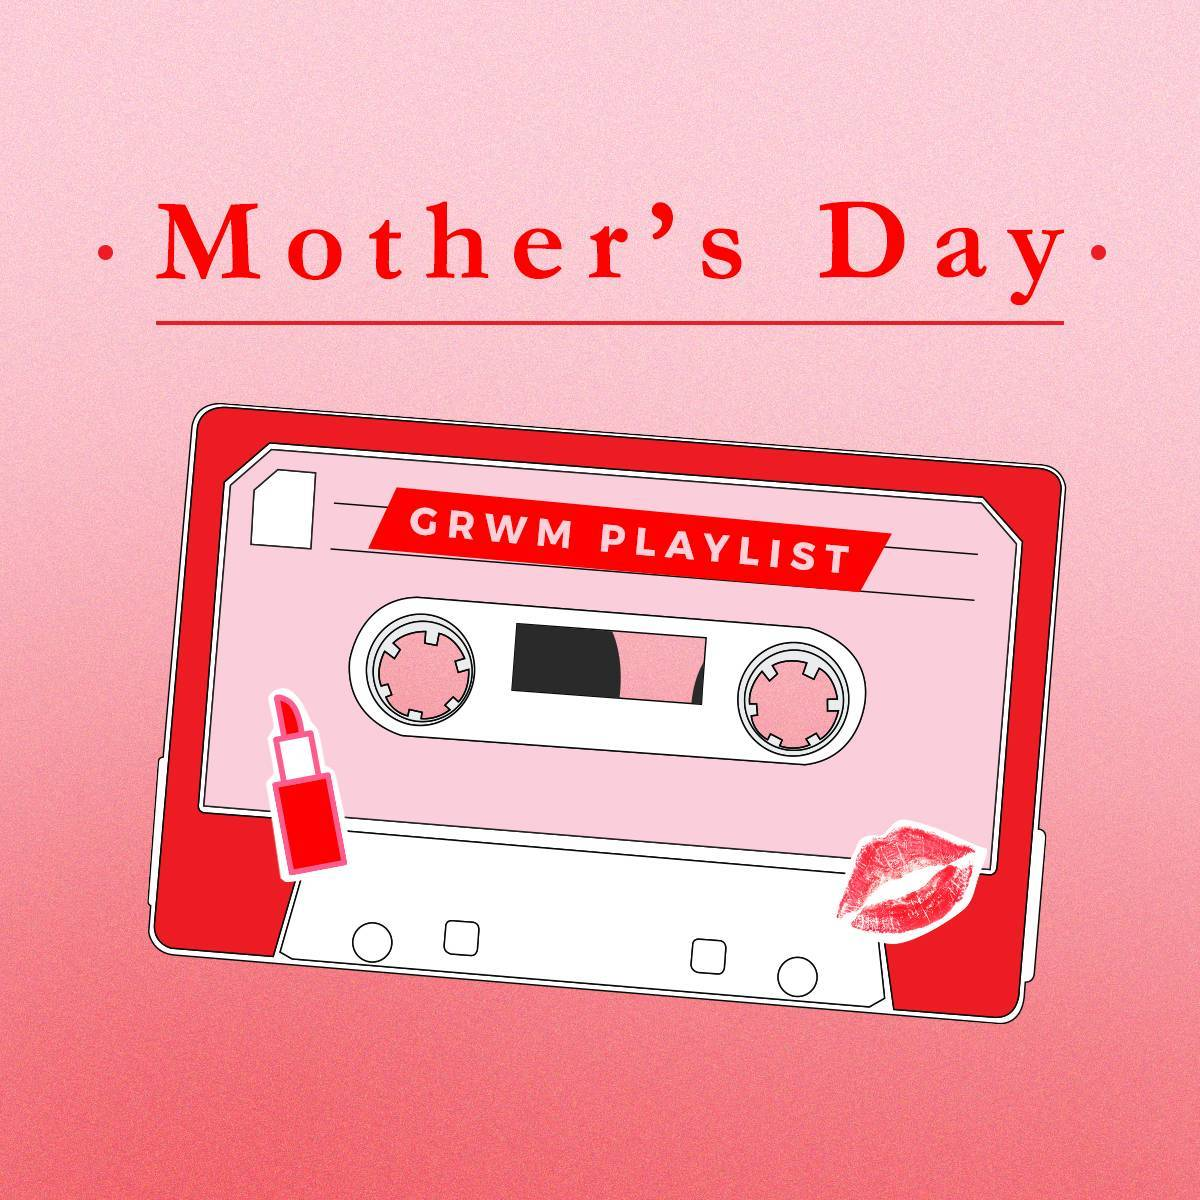 Spotify Music Playlist For Mother S Day 2018 Makeup Com Super bass 2020 ziyo music. spotify music playlist for mother s day